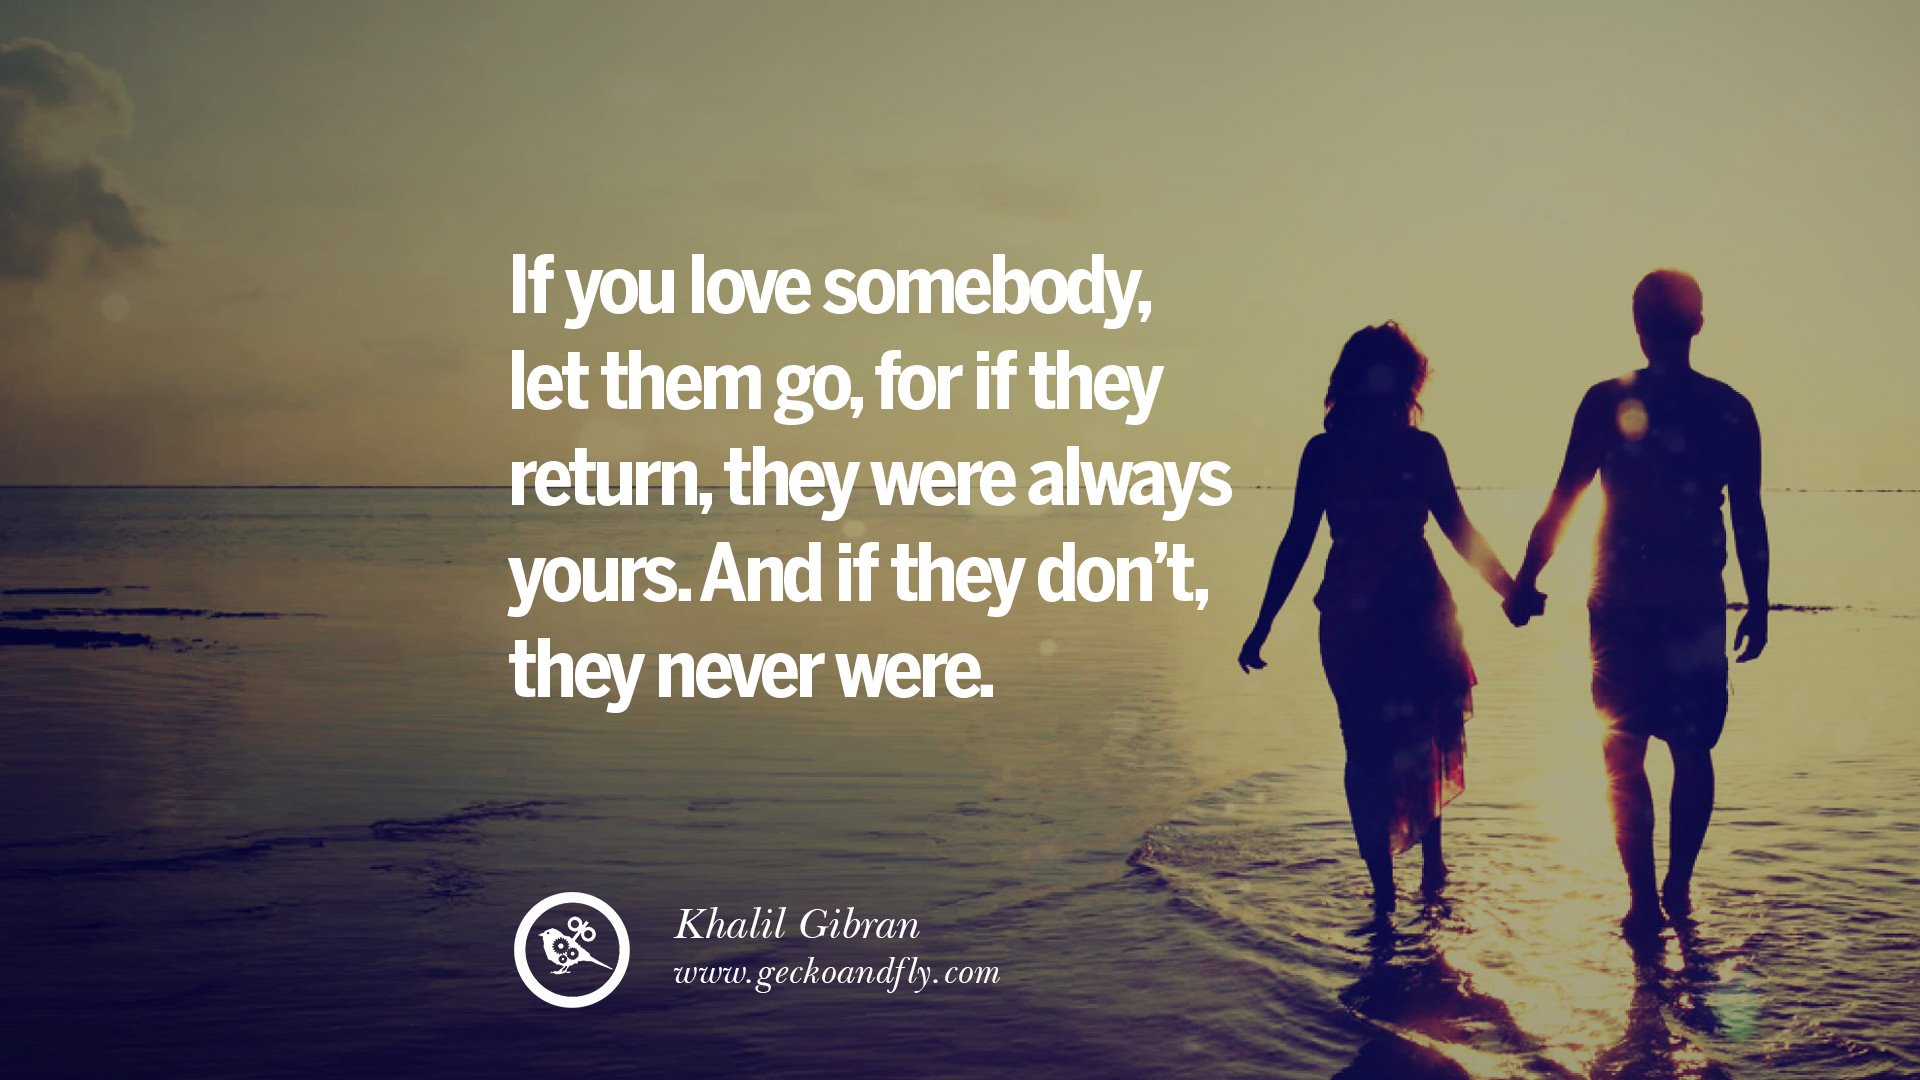 50 Quotes About Moving On And Letting Go Of Relationship And Love